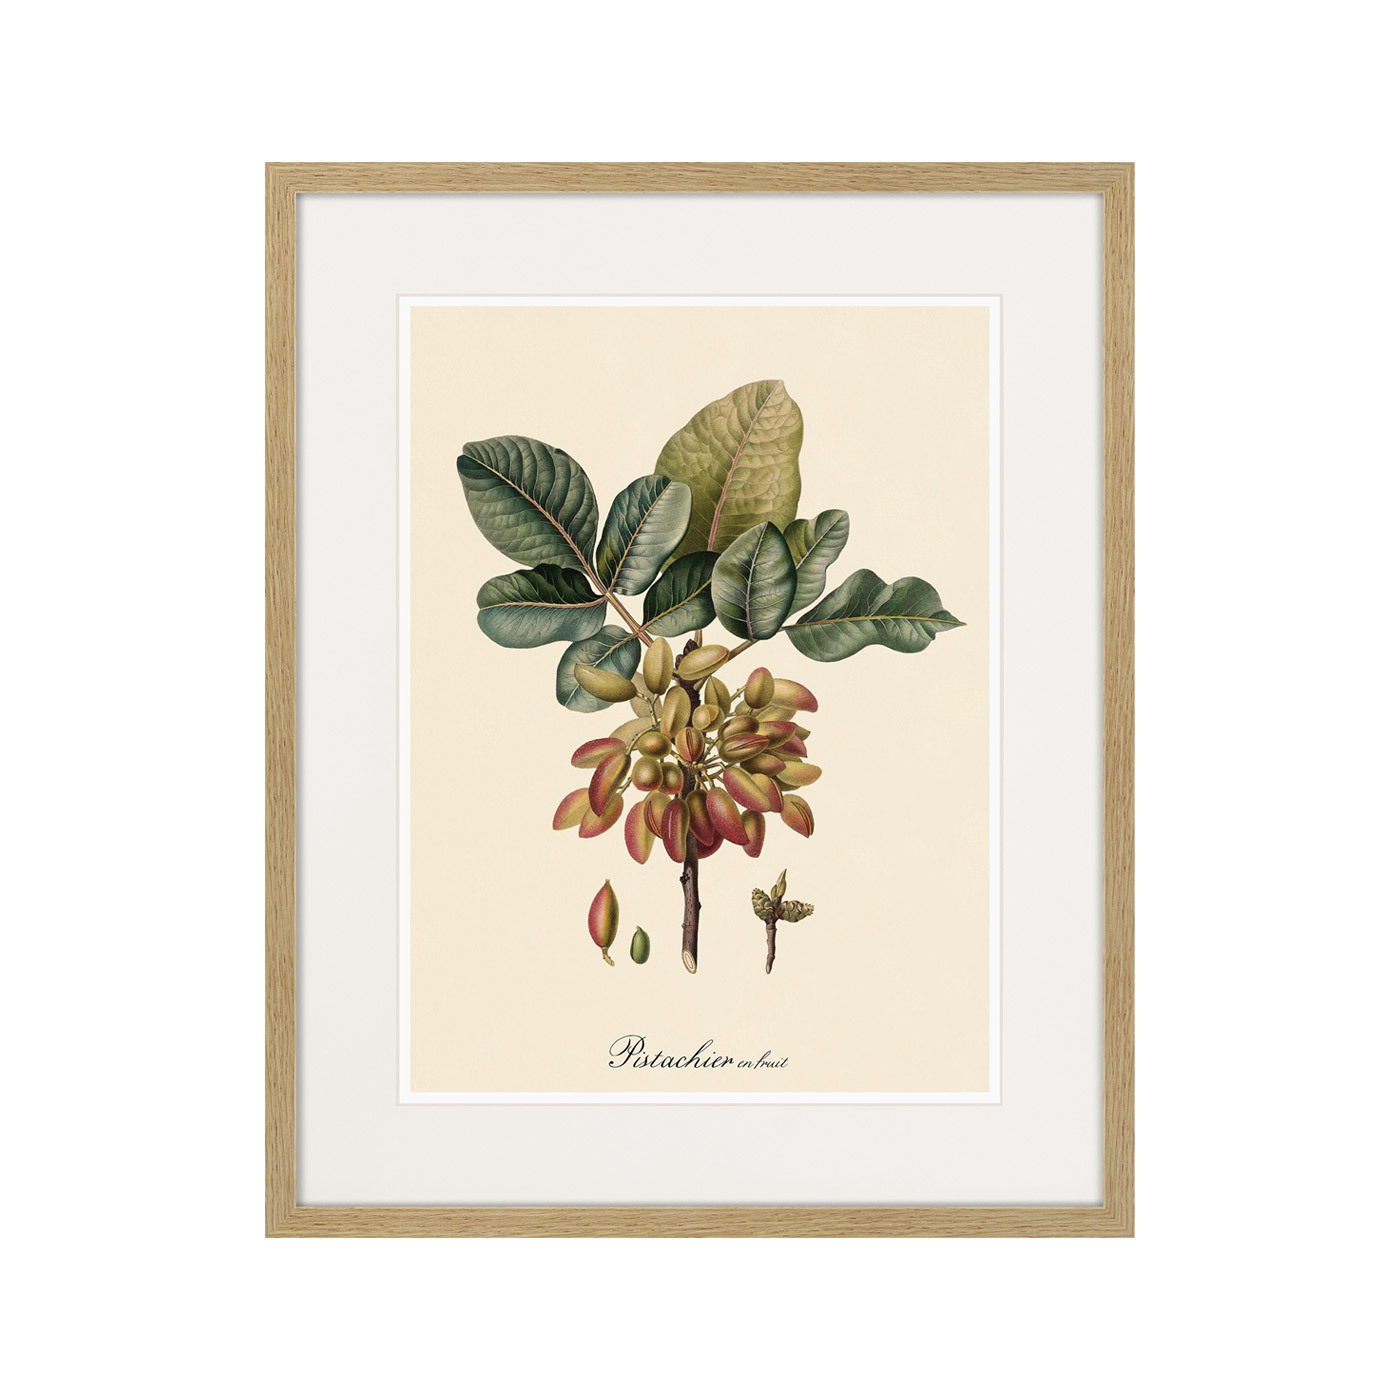 Juicy fruit lithography №8, 1870г.